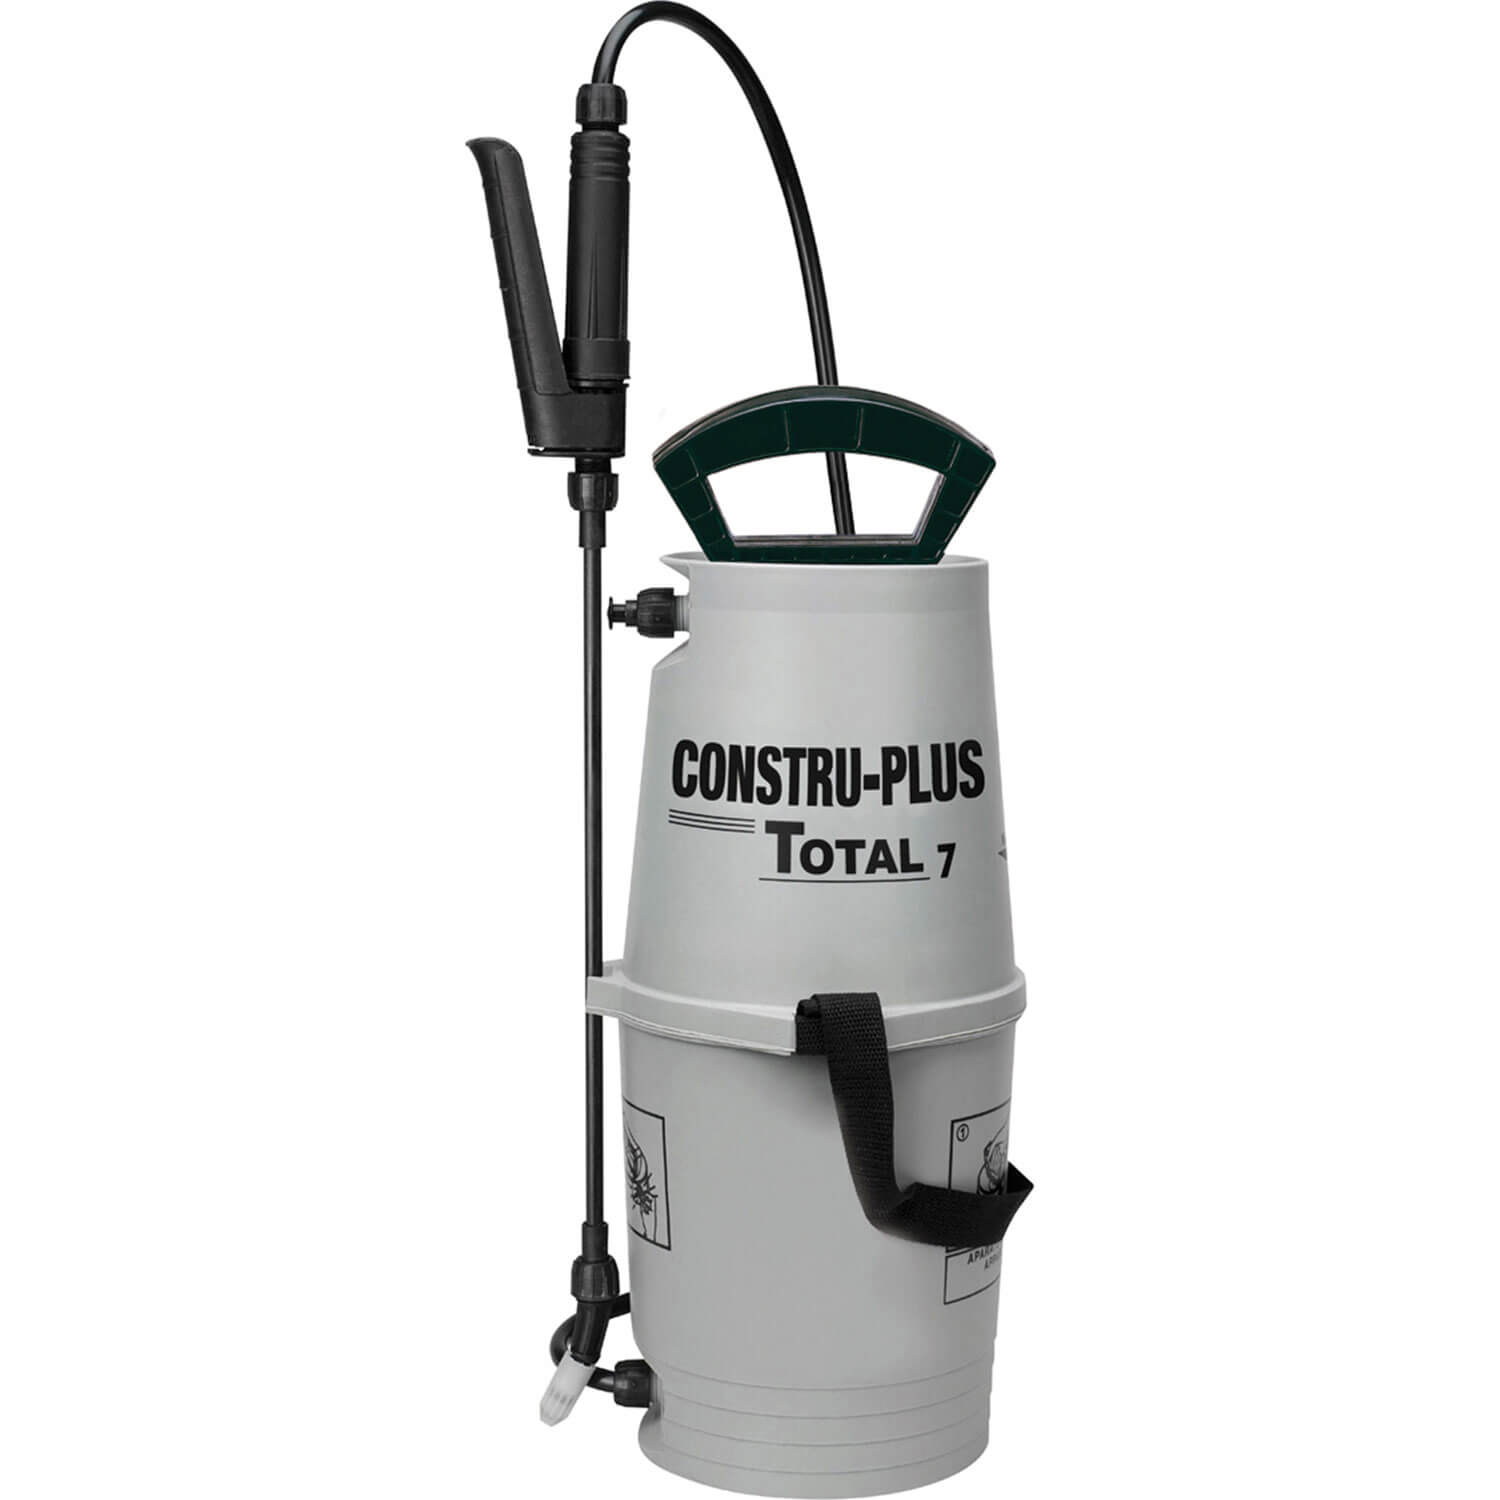 Image of Matabi Construplus 7 Pressure Water Sprayer 7l